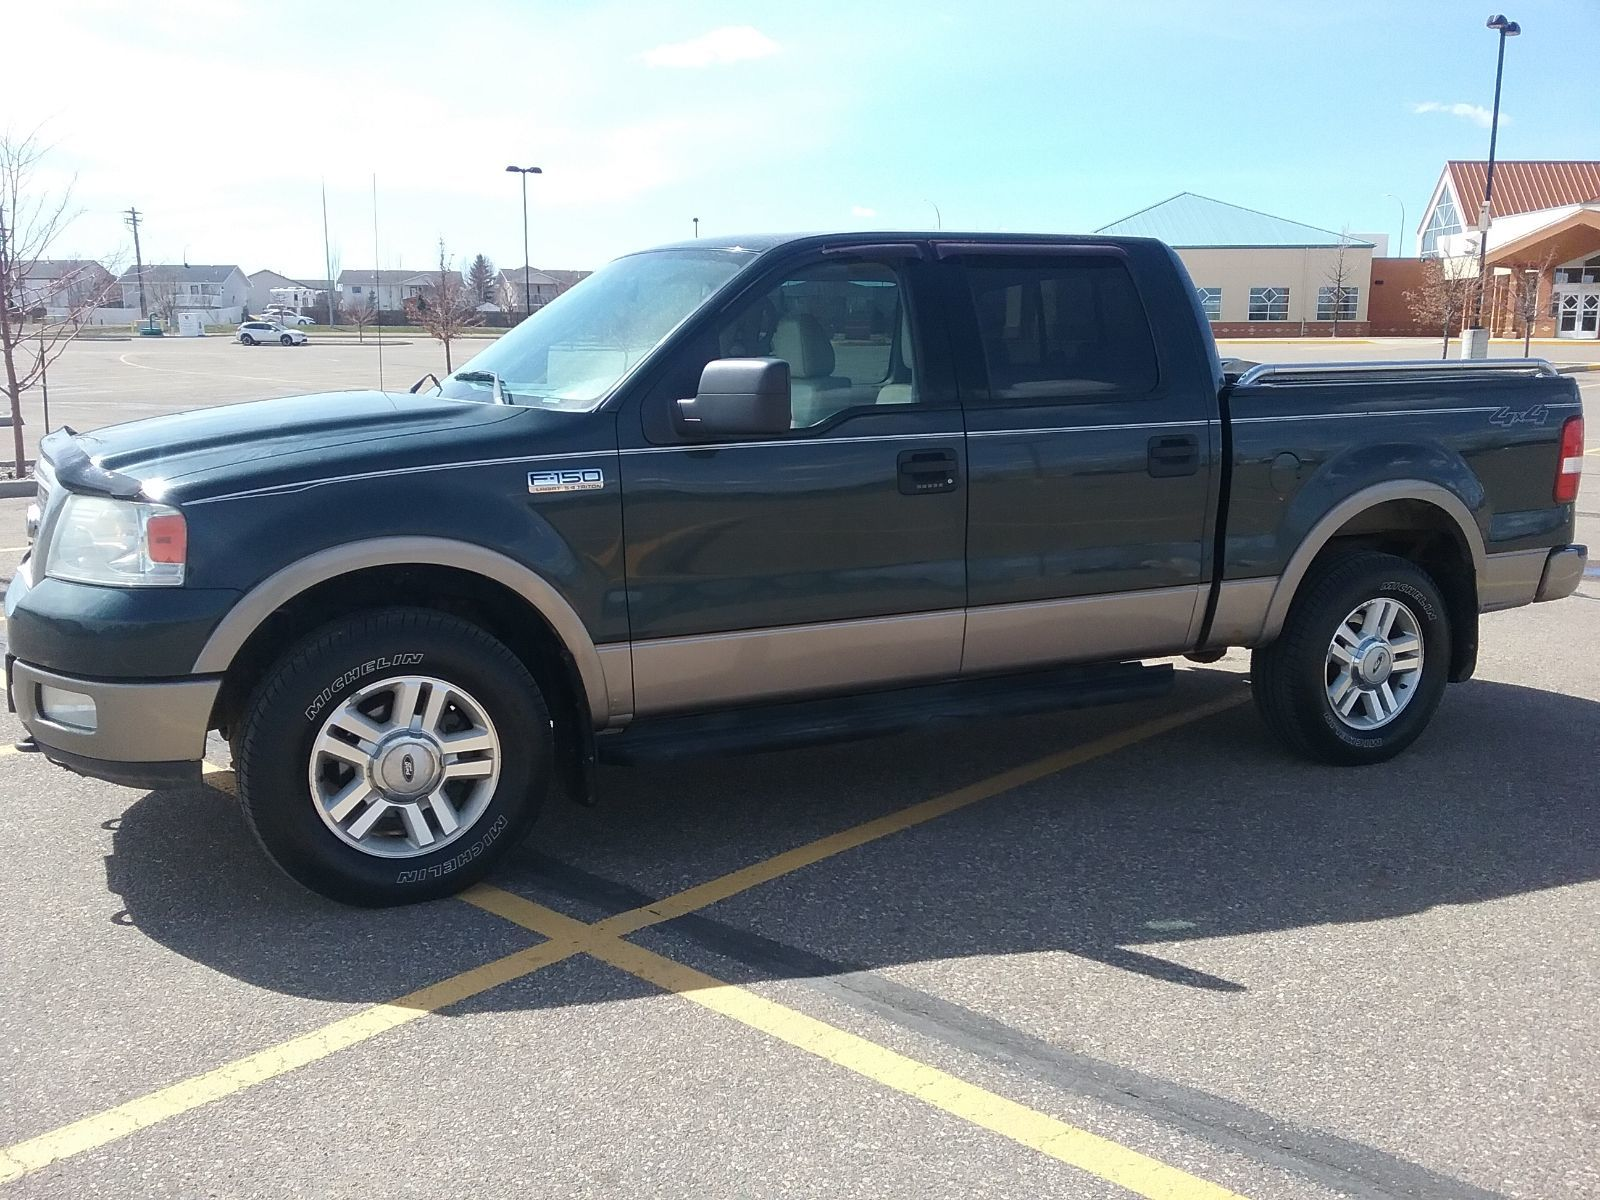 Used 2004 Ford F-150 Supercrew 4x4 Lariat Green 301 304 Km For Sale